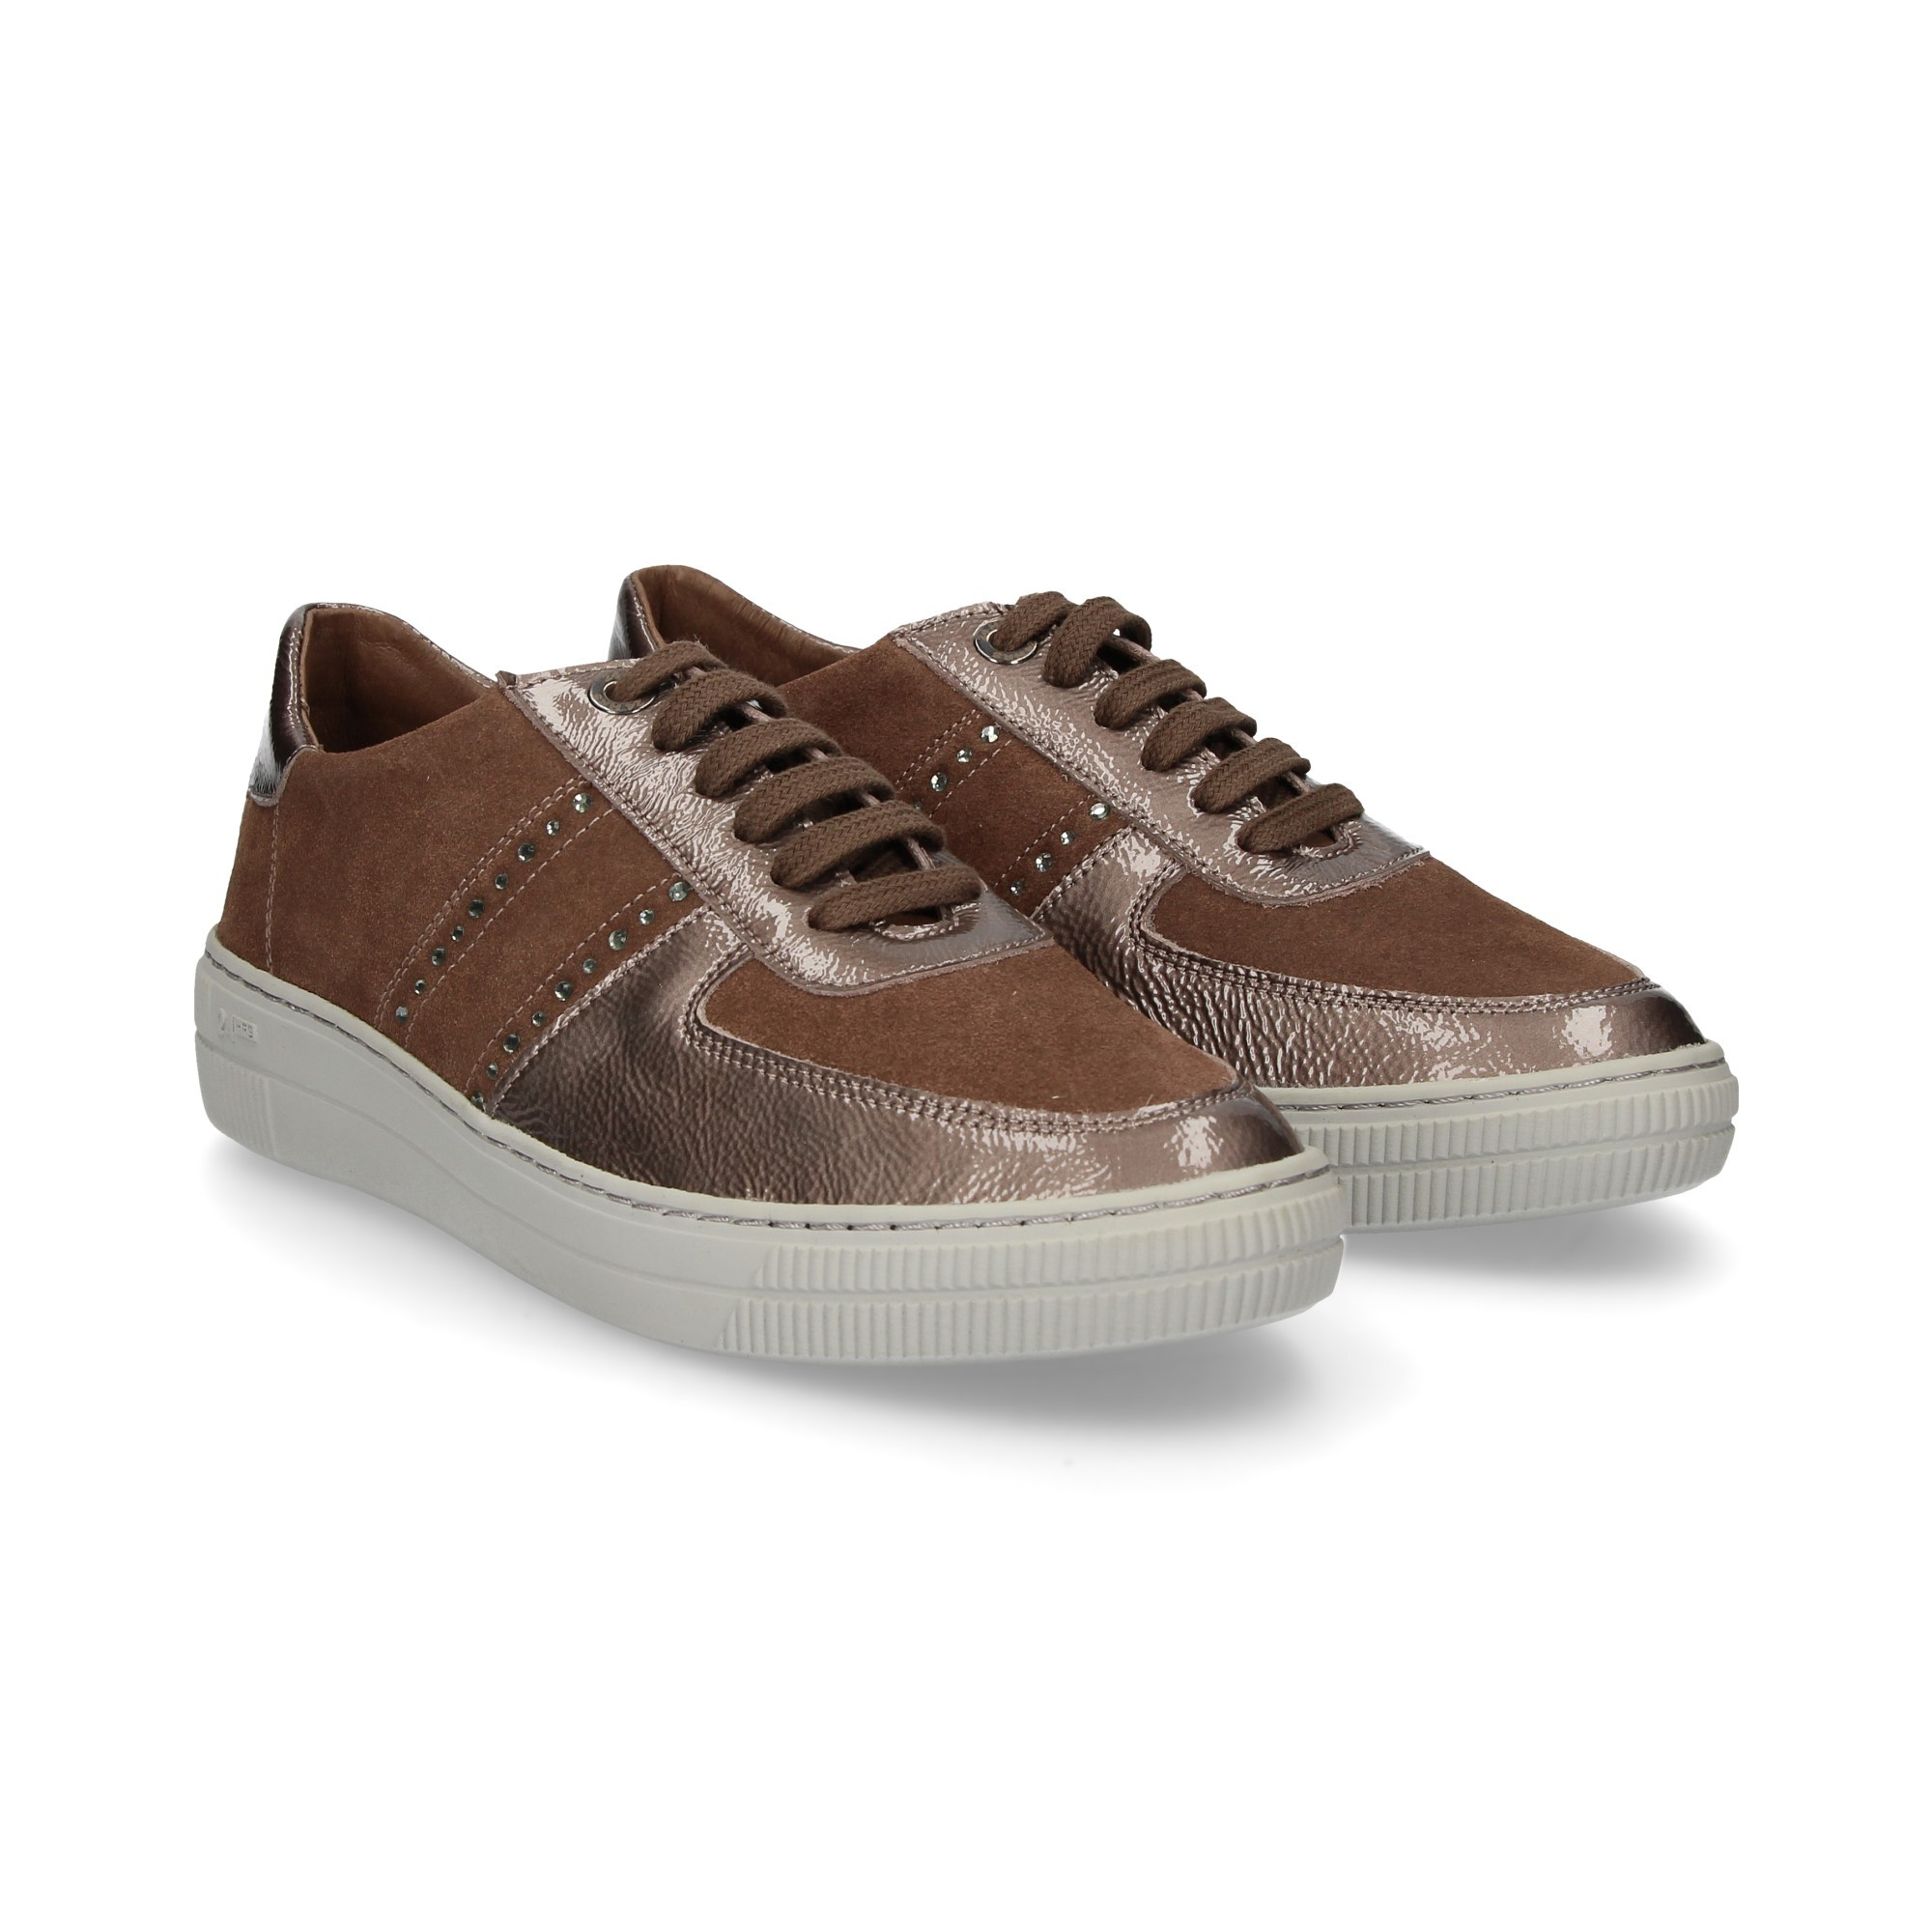 Mujer 24 Taupe Horas 23888 De Zapatillas wtZT1nqt7x